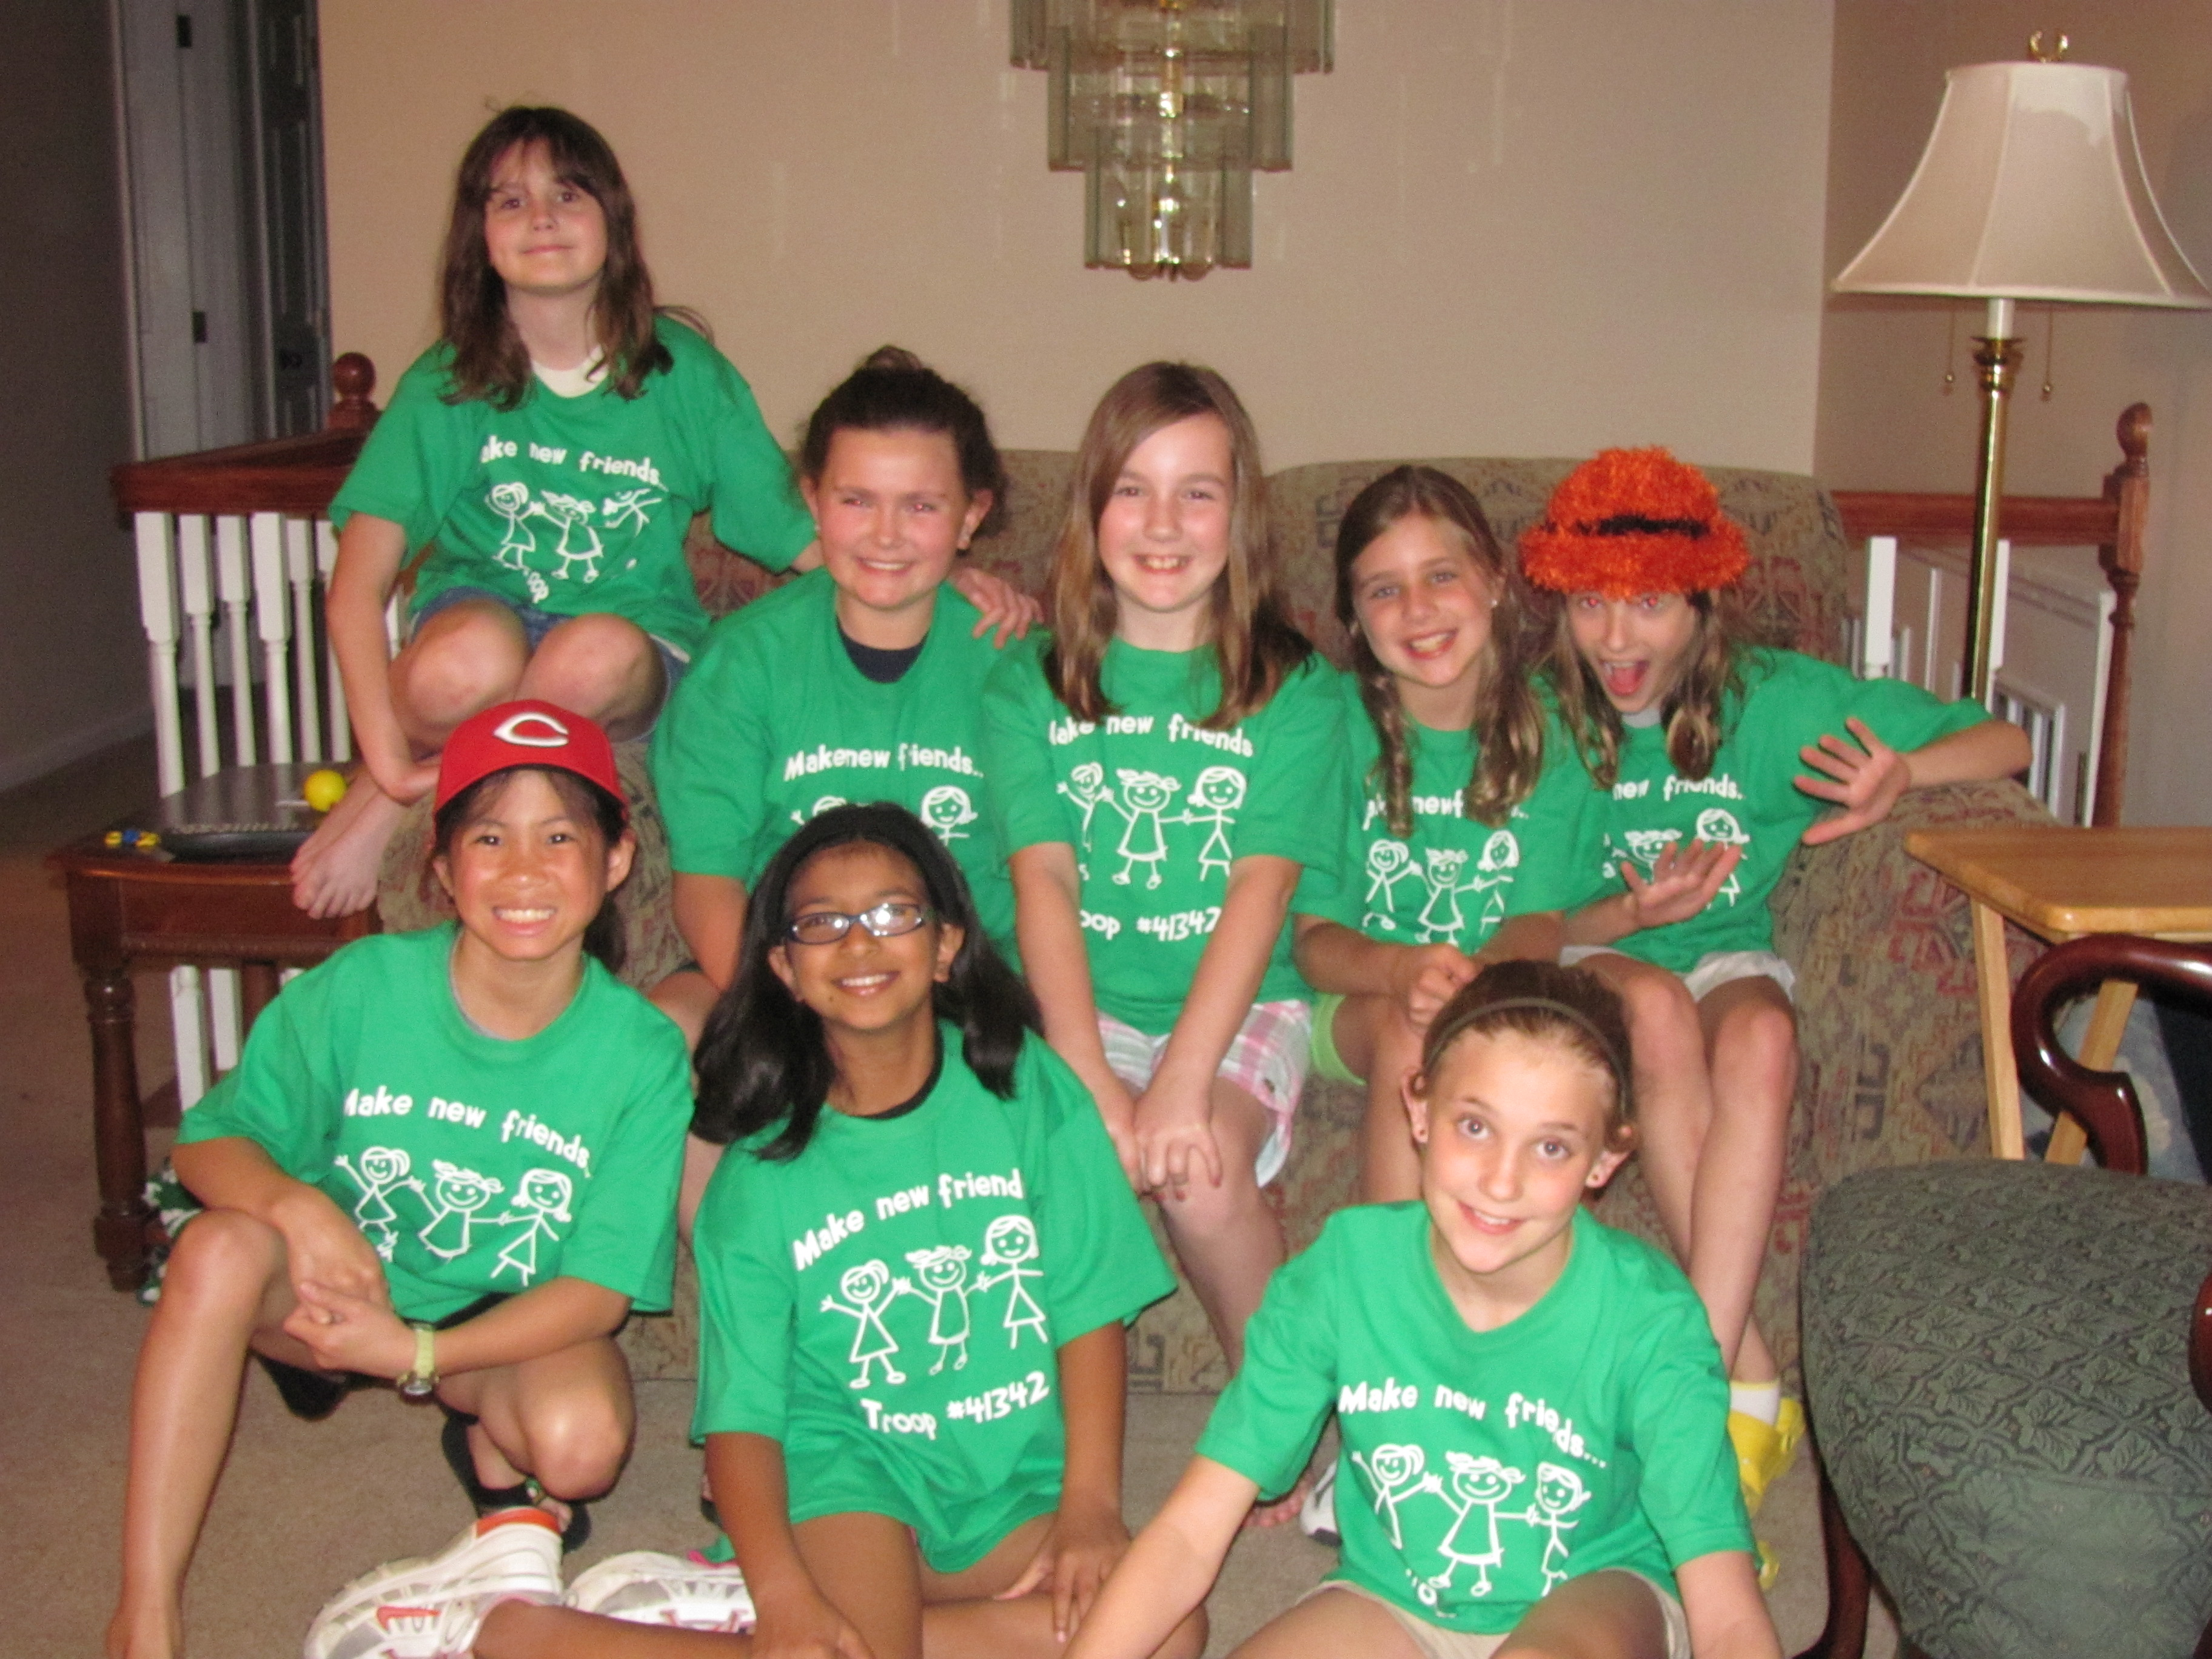 Custom t shirts for girl scouts go green shirt design for Girl scout troop shirts